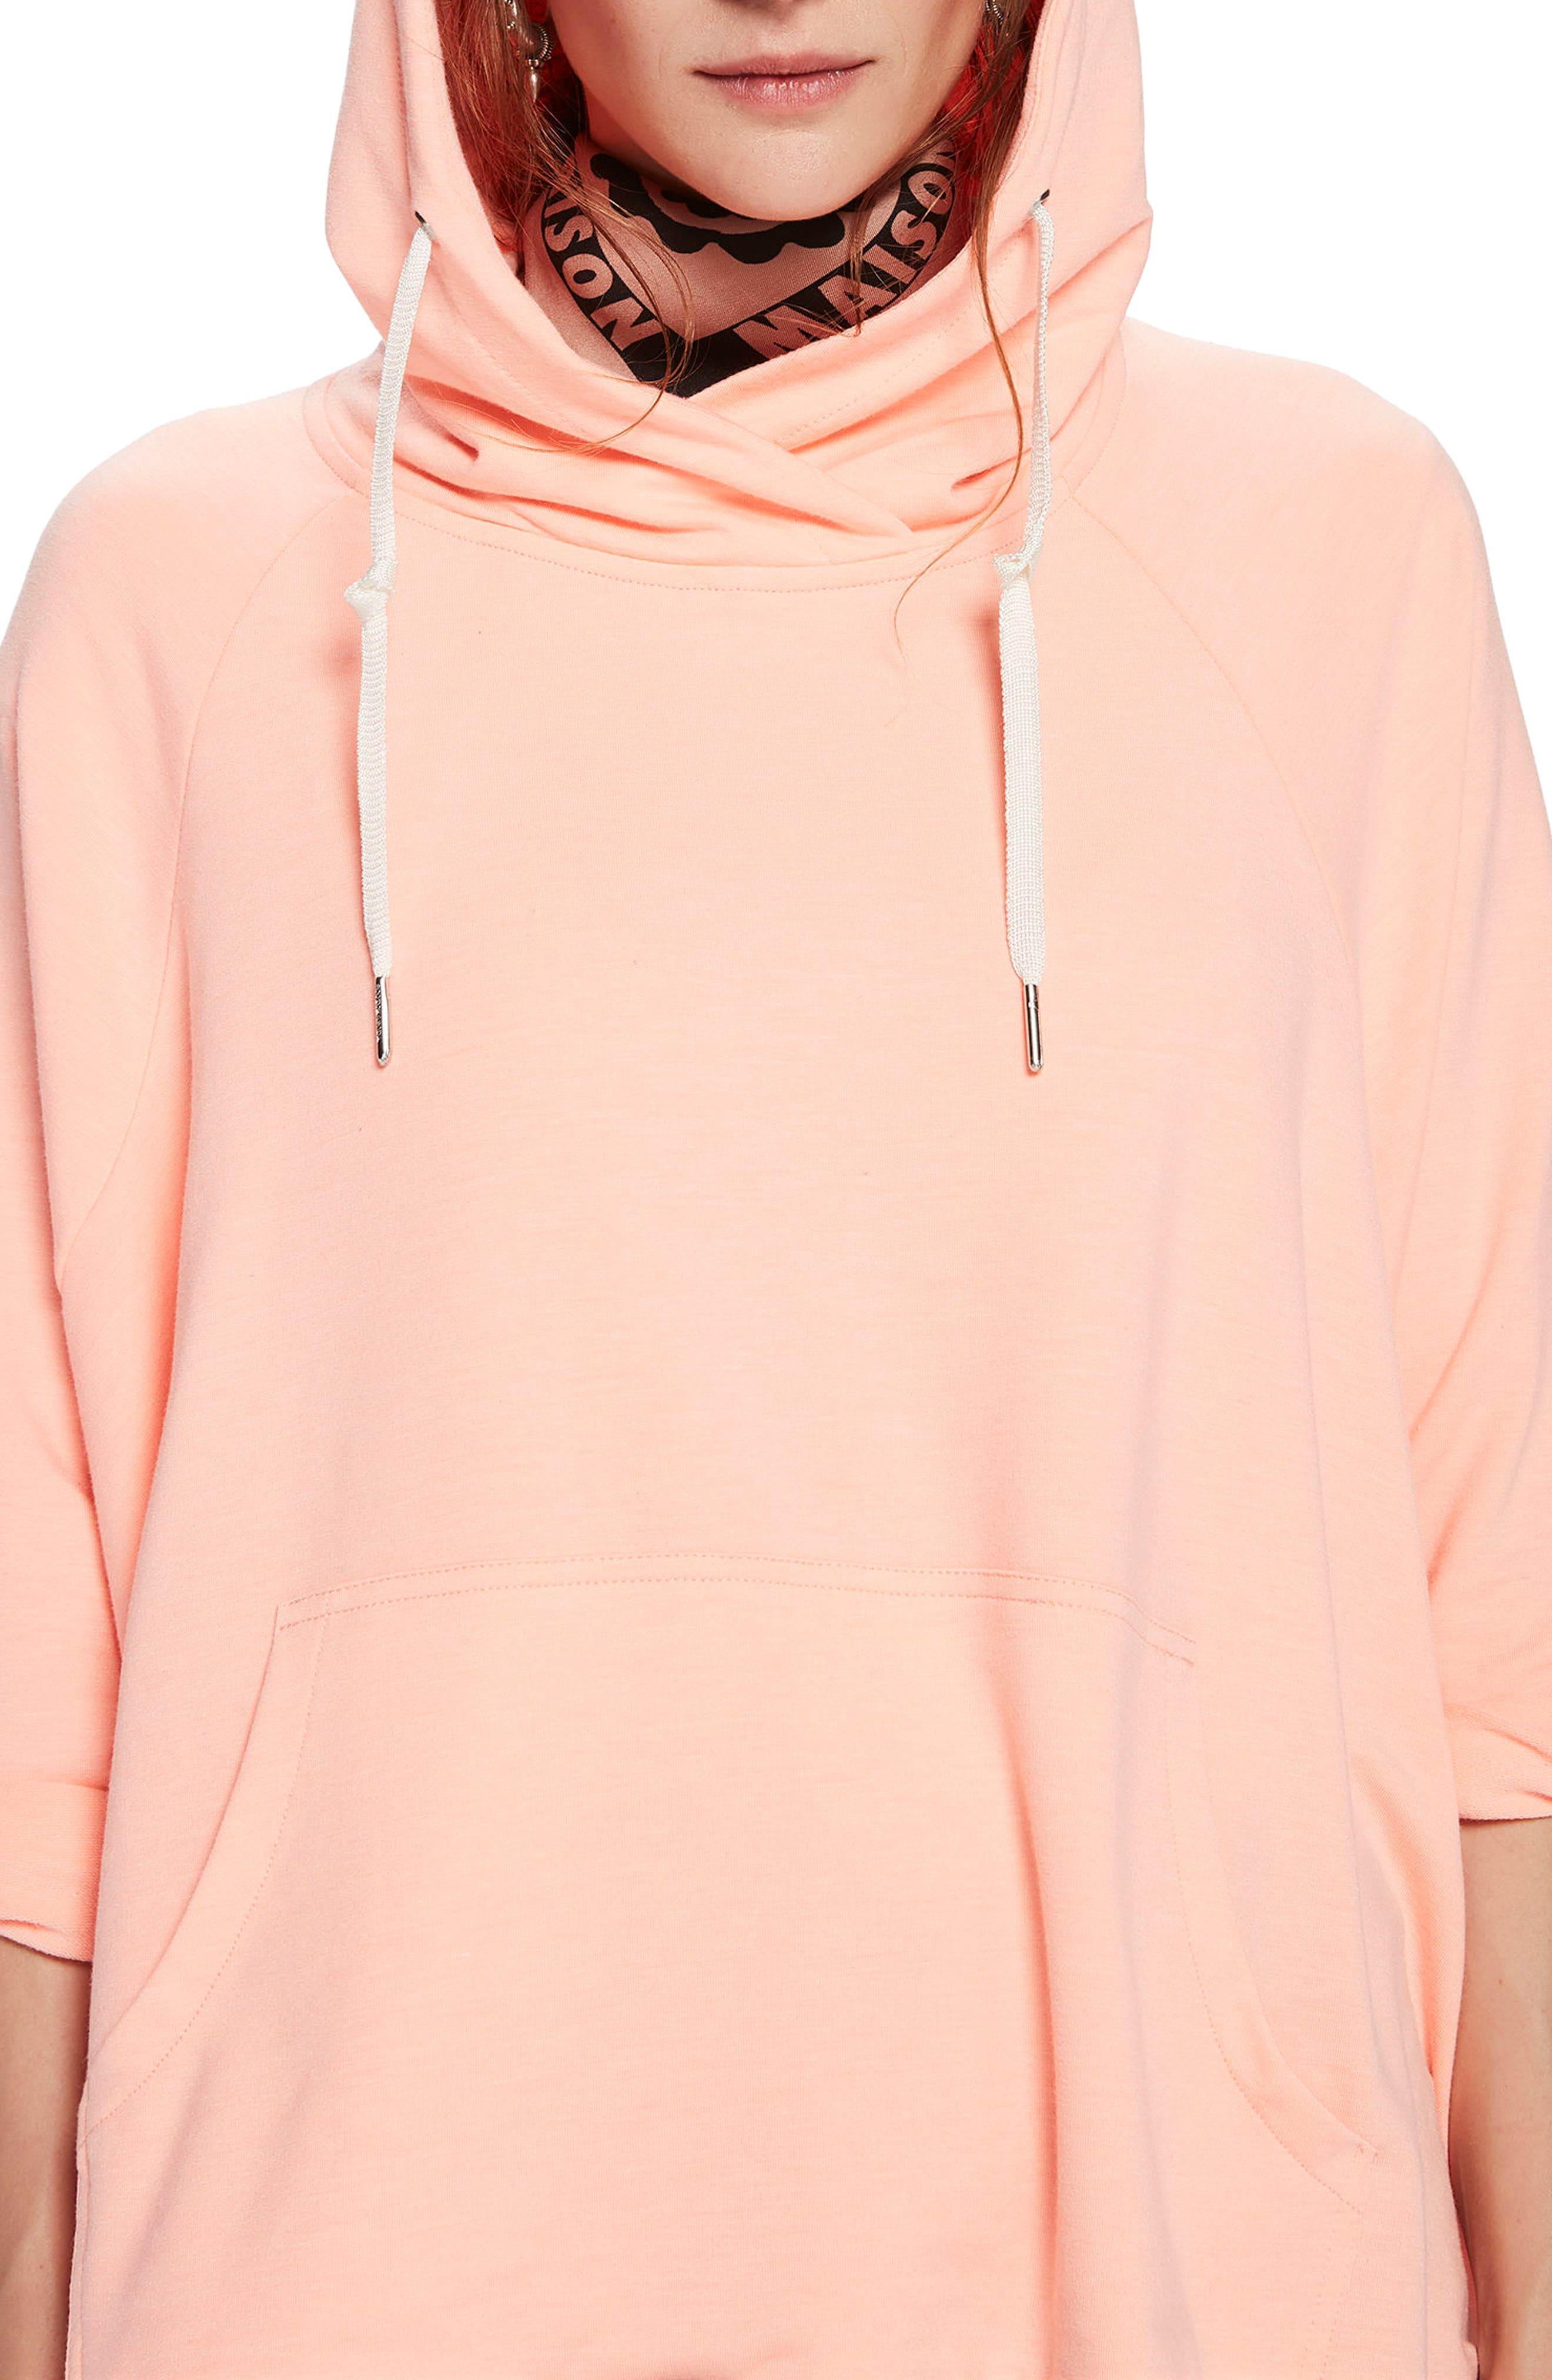 Boxy Fit Hoodie,                             Alternate thumbnail 4, color,                             COLOR 2015 CORAL